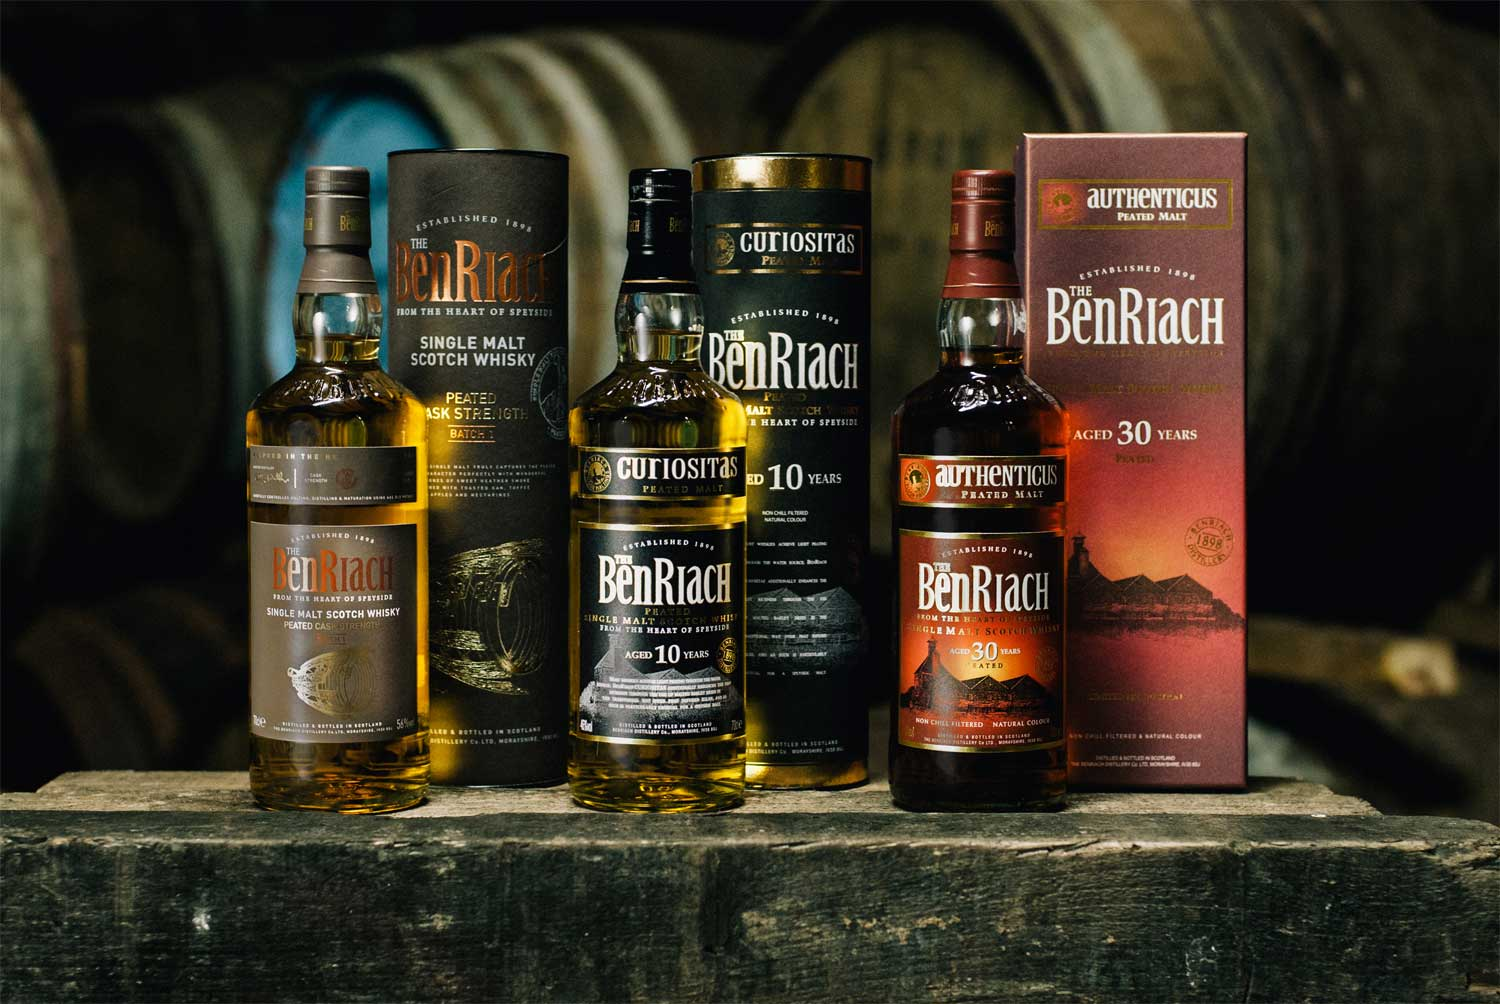 BenRiach Releases Rare Peated Speyside Authenticus 30 Years old 4